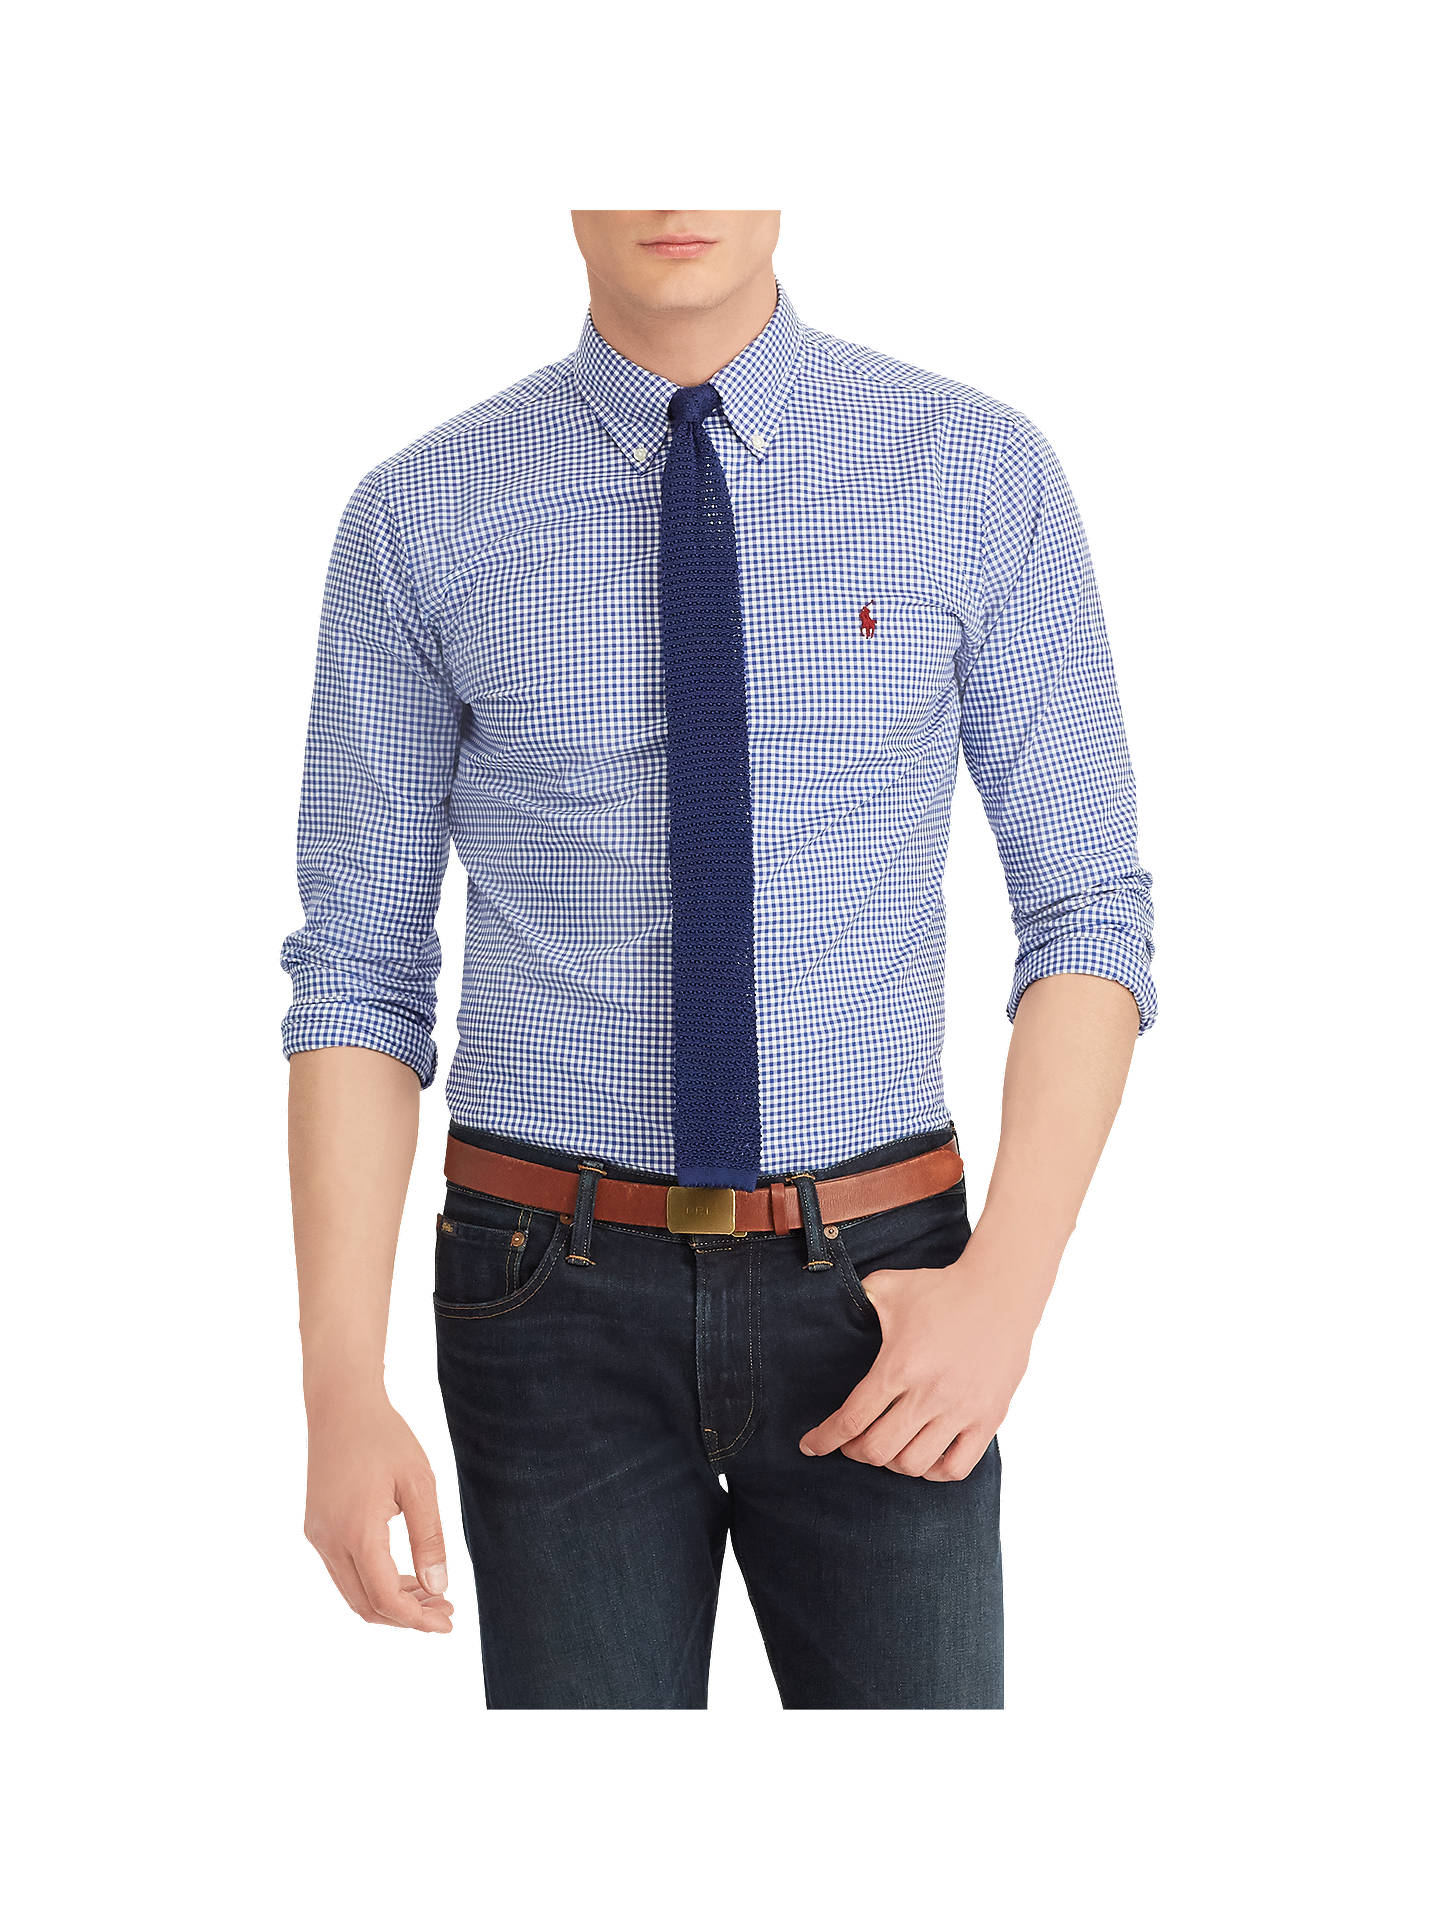 2b54422aa Polo Ralph Lauren Poplin Gingham Shirt at John Lewis   Partners